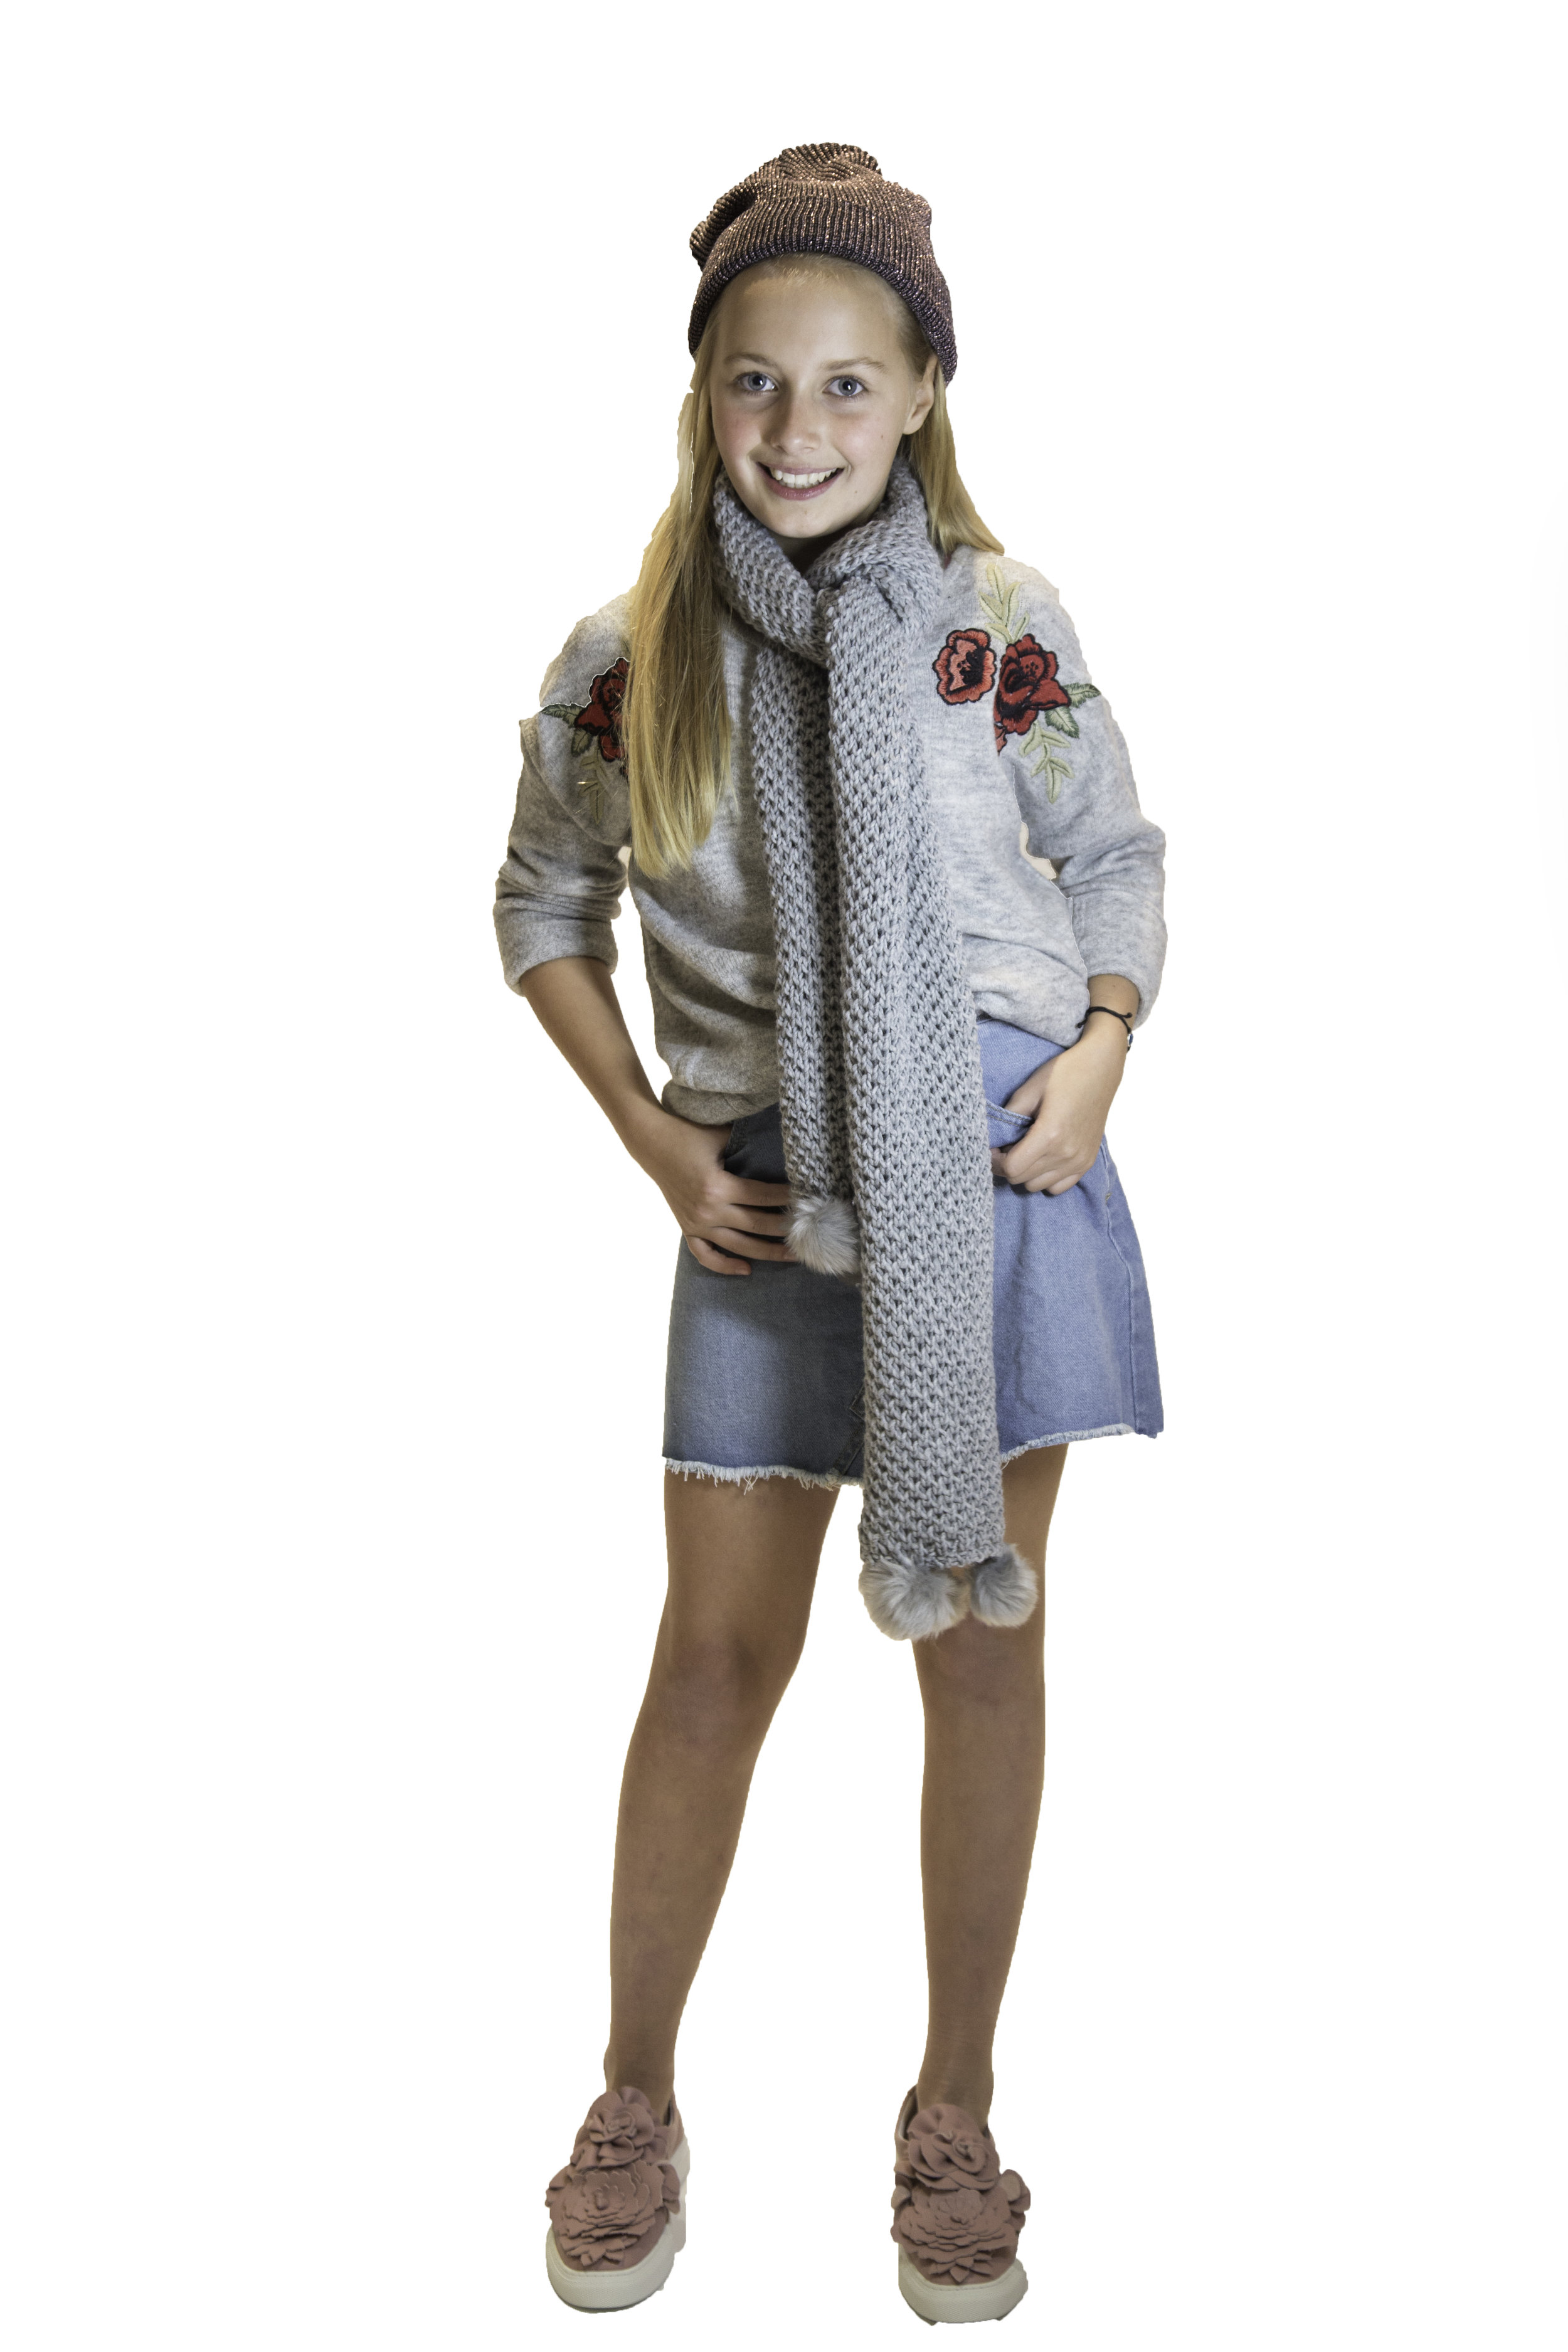 COTTON ON /  DENIM SKIRT  /  $34.95  CROSSROADS /    GREY SCARF  /  $29.95  COTTON ON /  METALLIC BEANIE  /  $9.95  WITTNER SHOES /  DETAILED SNEAKERS  /  $199.99